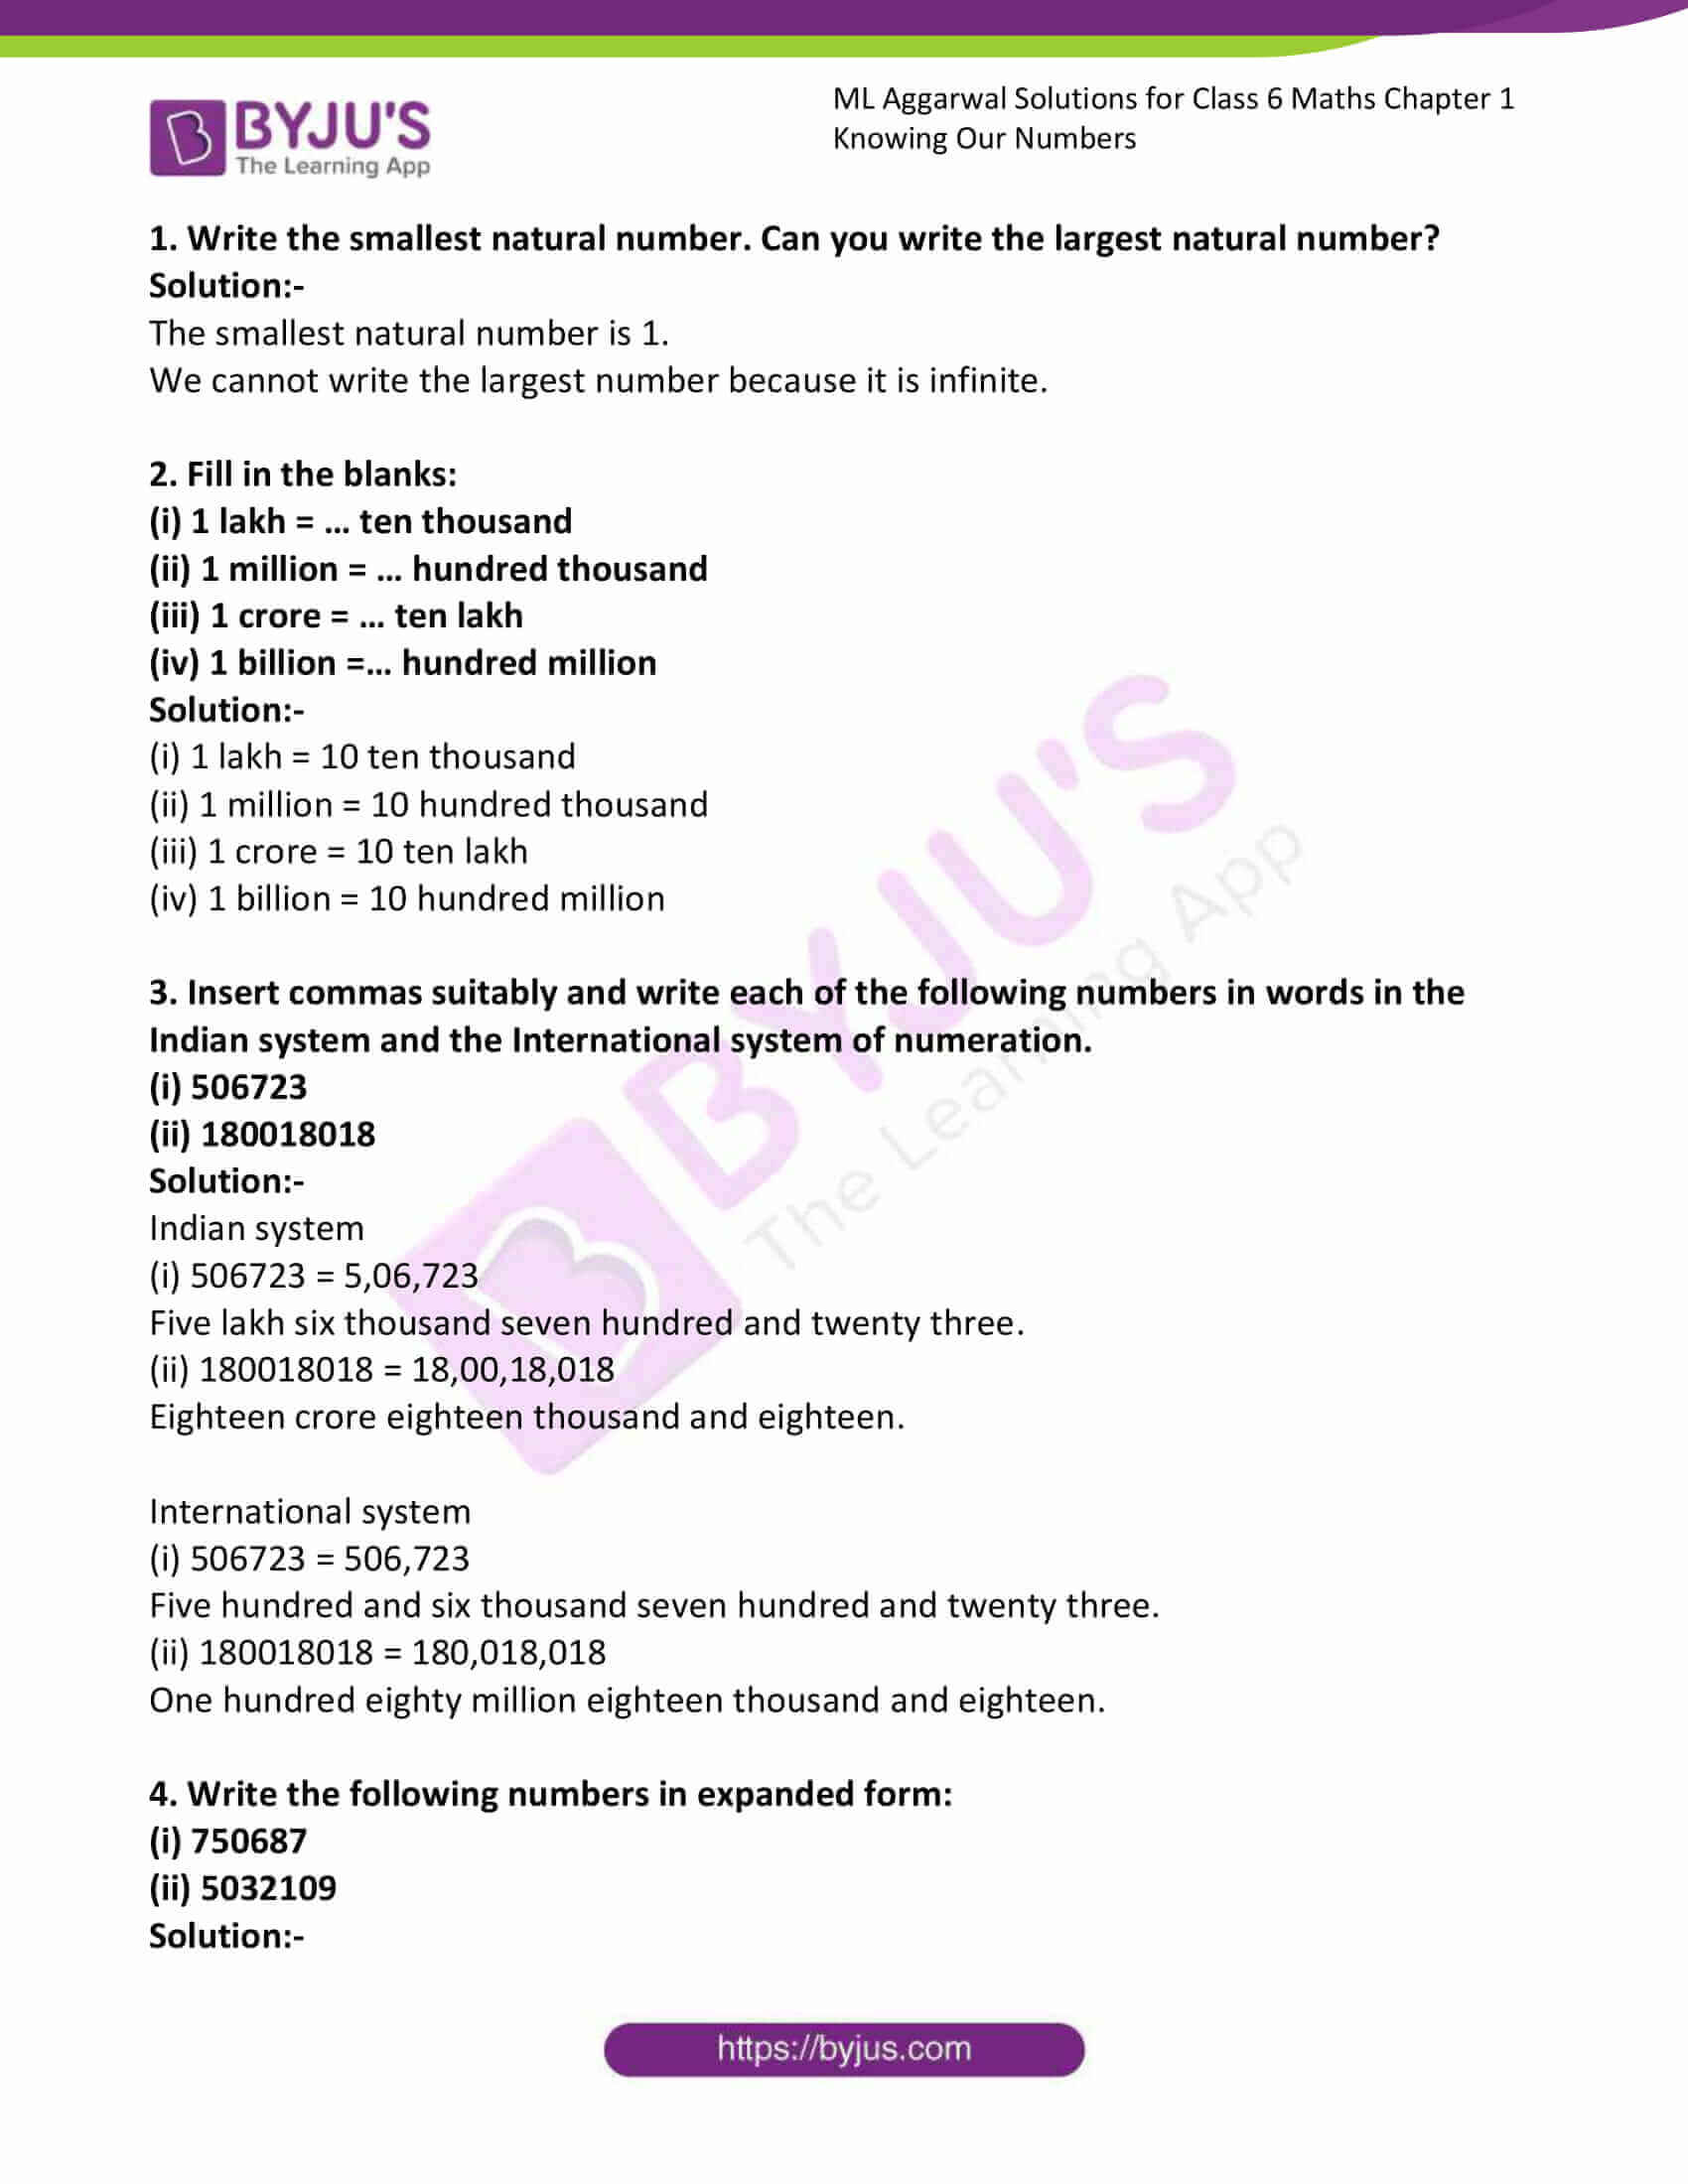 ml aggarwal solutions for class 6 maths chapter 1 1